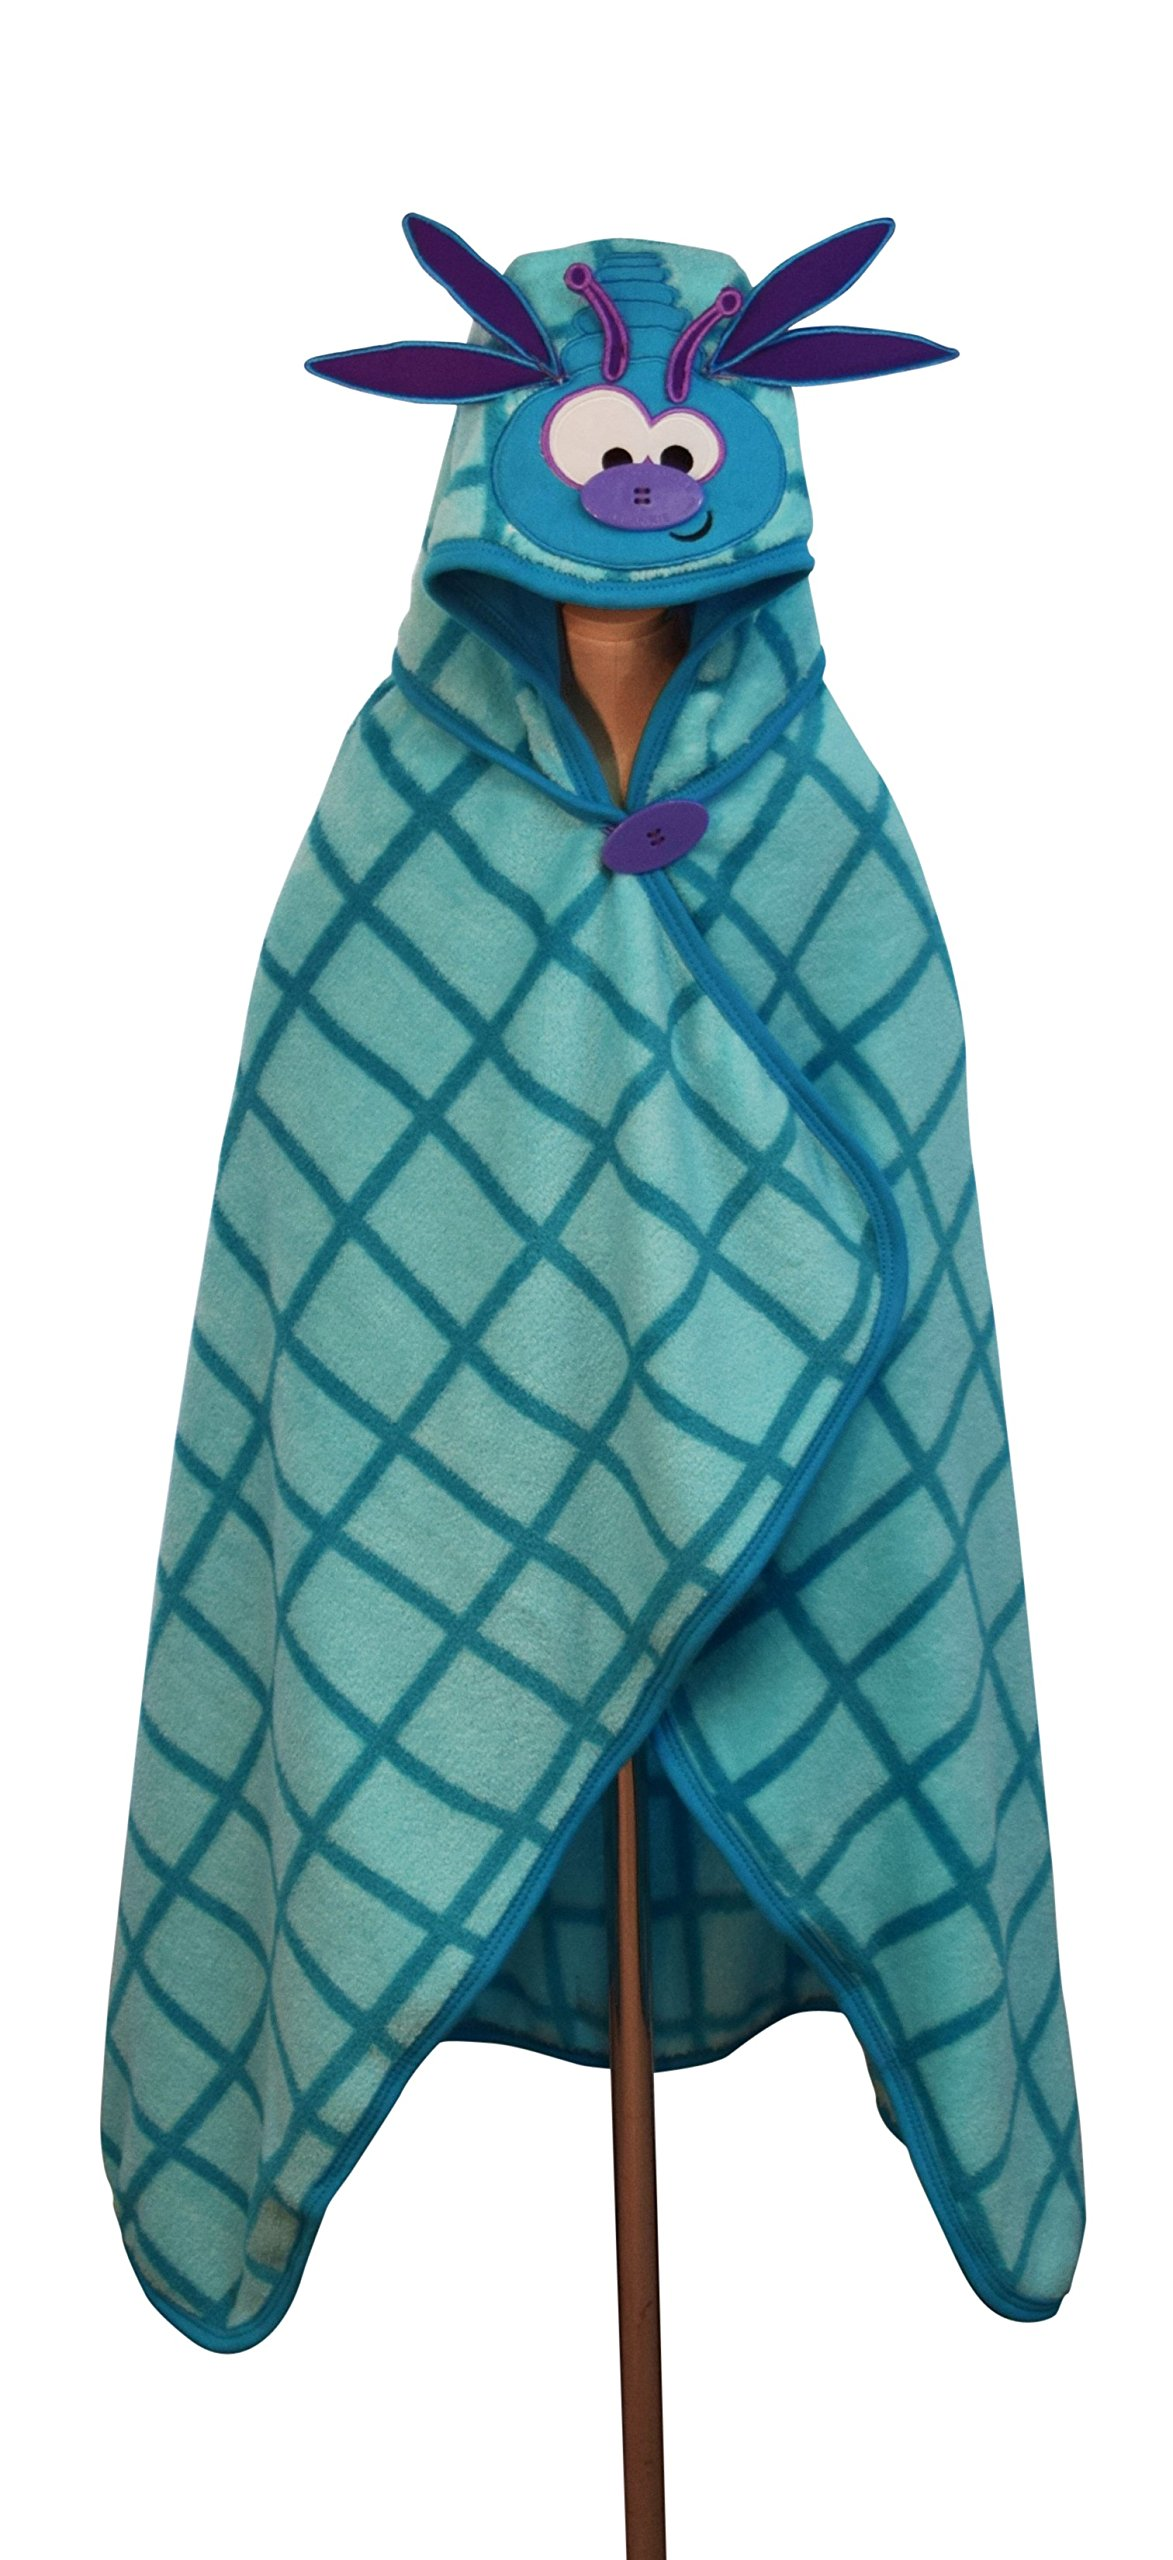 Goo-Goo Baby Button Nose Kid's Hooded Blanket and Towel, Warm Soft Fleece Character Blanket, Dragonfly, 0-10 Years